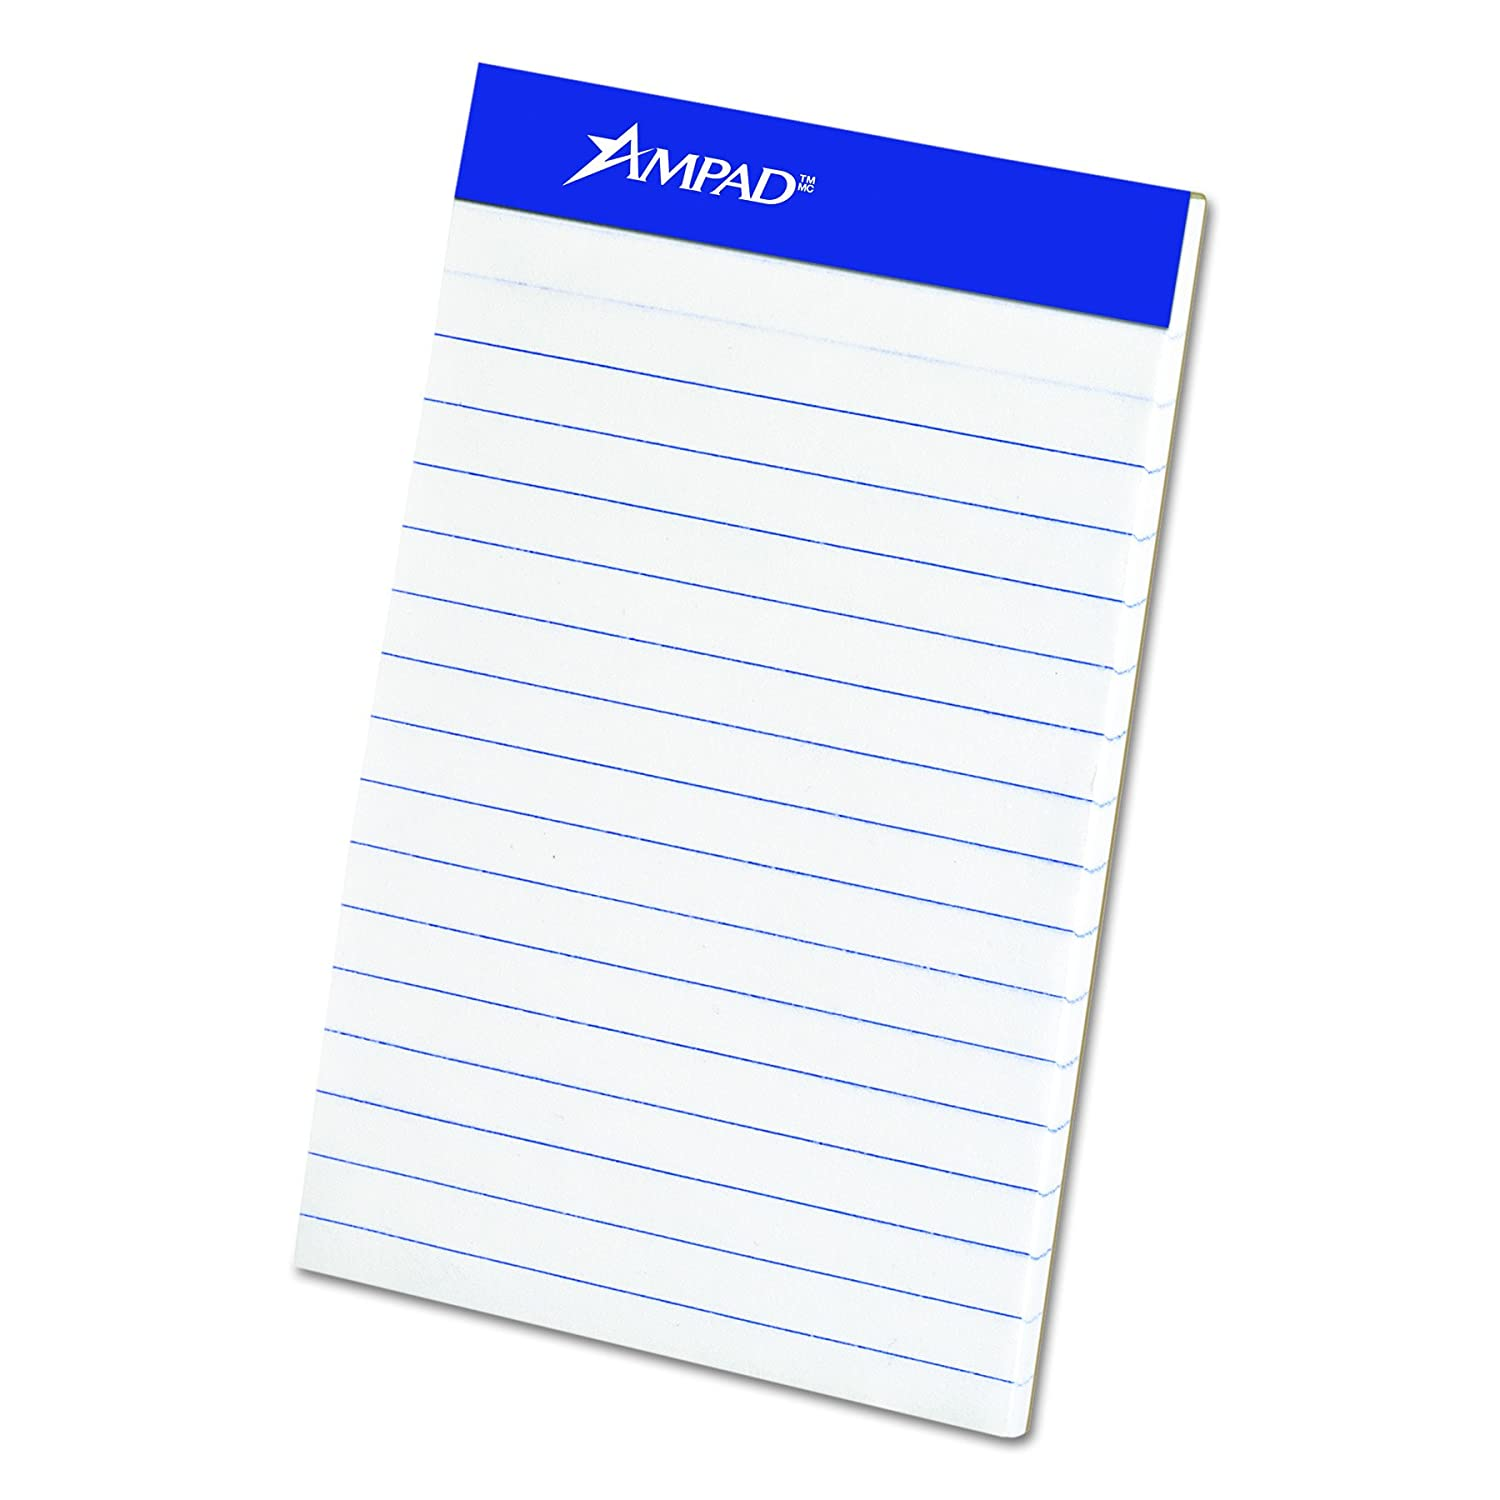 """Ampad 20-208 Evidence 3"""" x 5"""" Narrow Perforated Writing Pads - White (12 Pads of 50 Sheets Each)"""